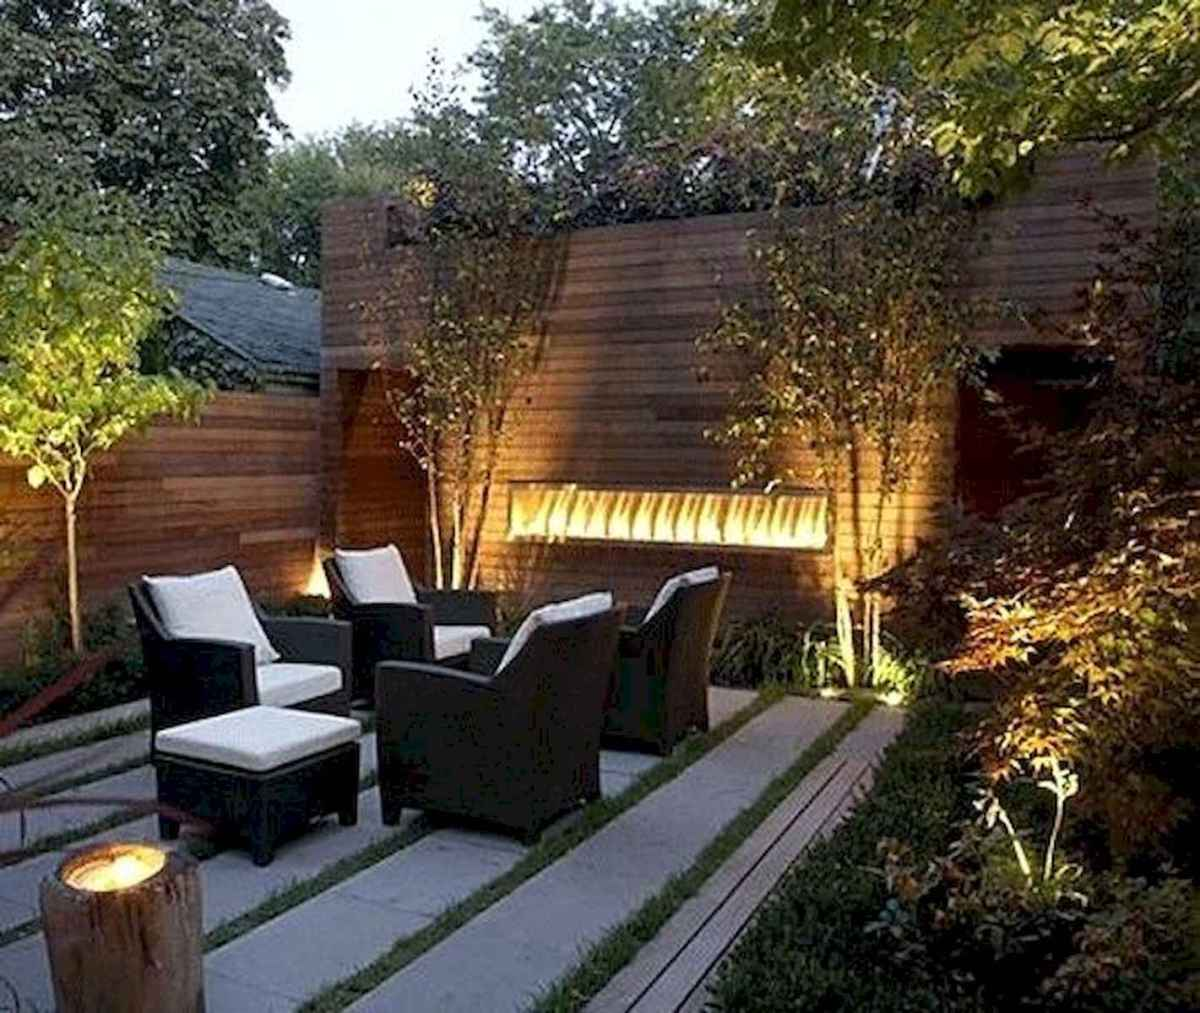 80 DIY Summery Backyard Projects Ideas Make Your Summer Awesome (46)